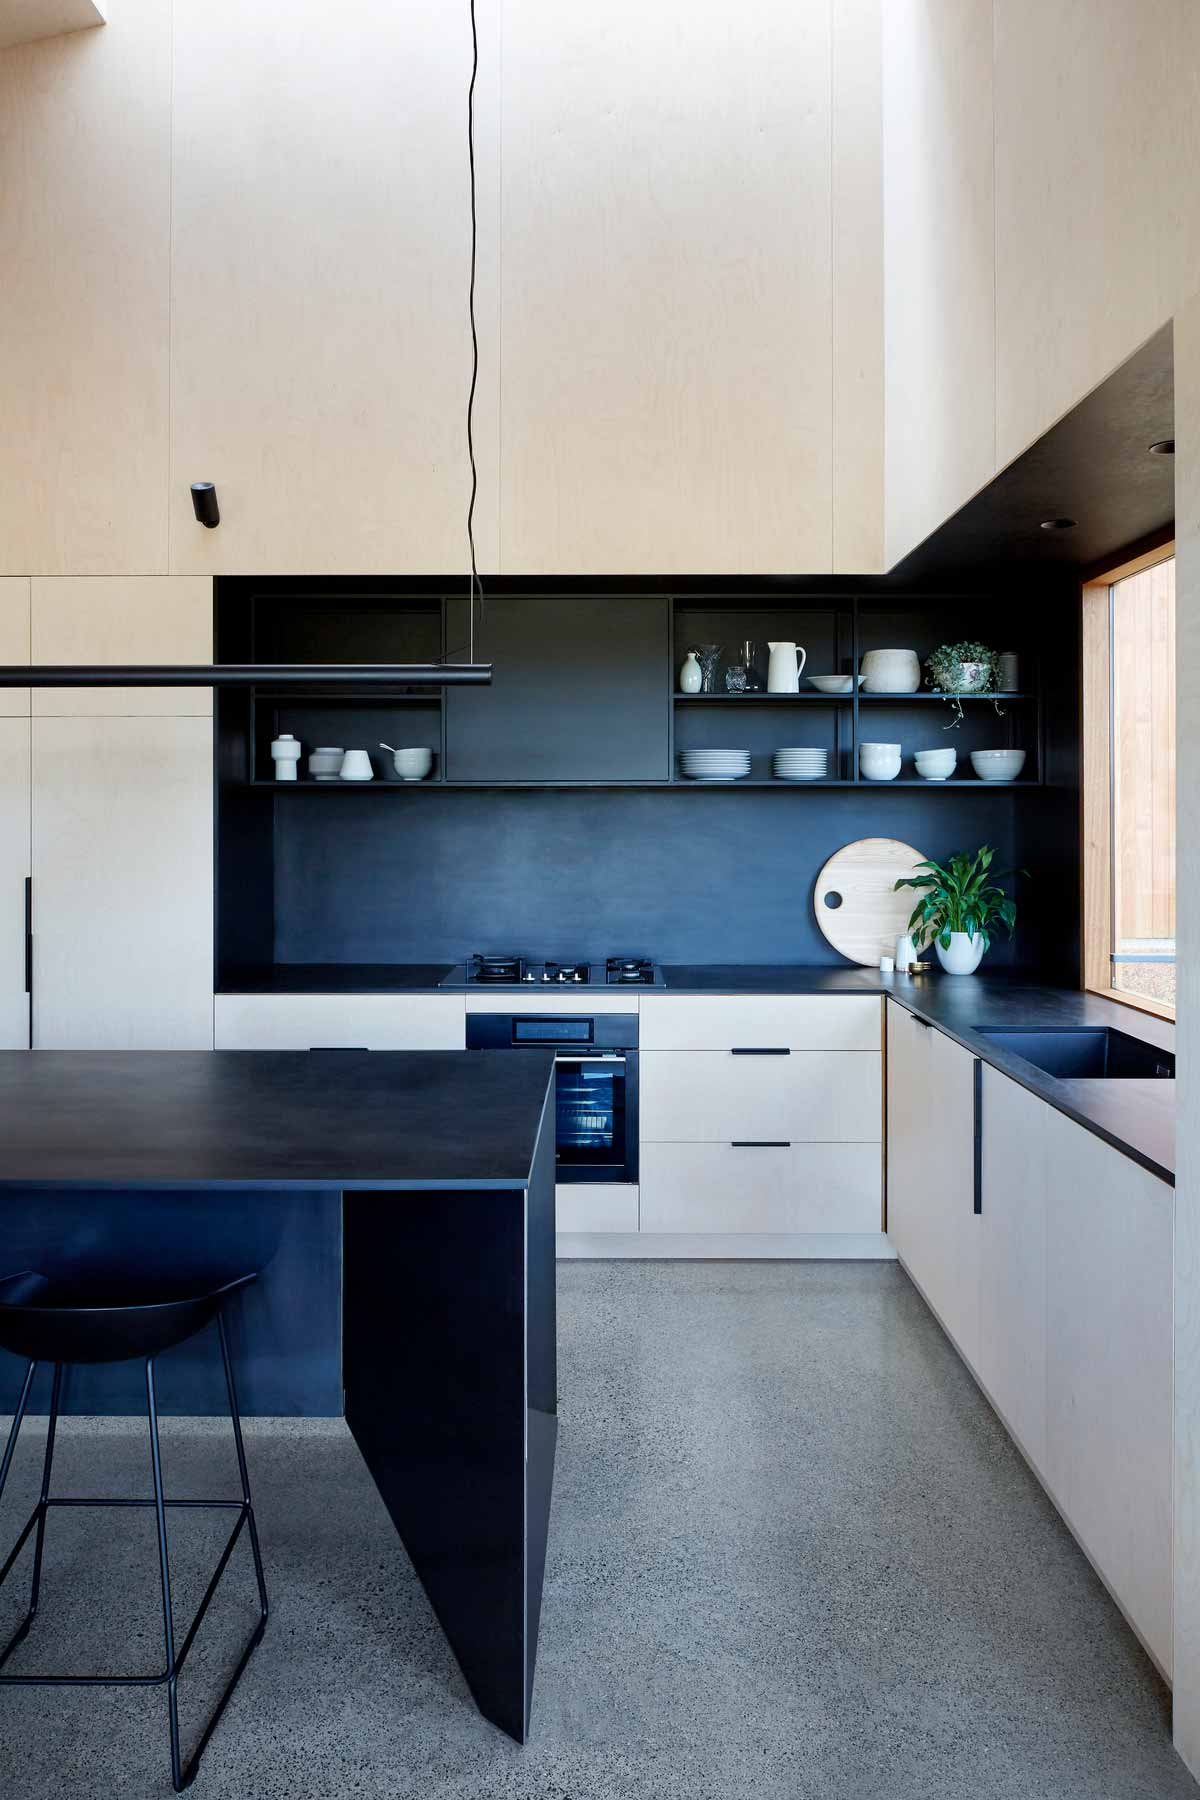 split space house kitchen design - Two Halves House